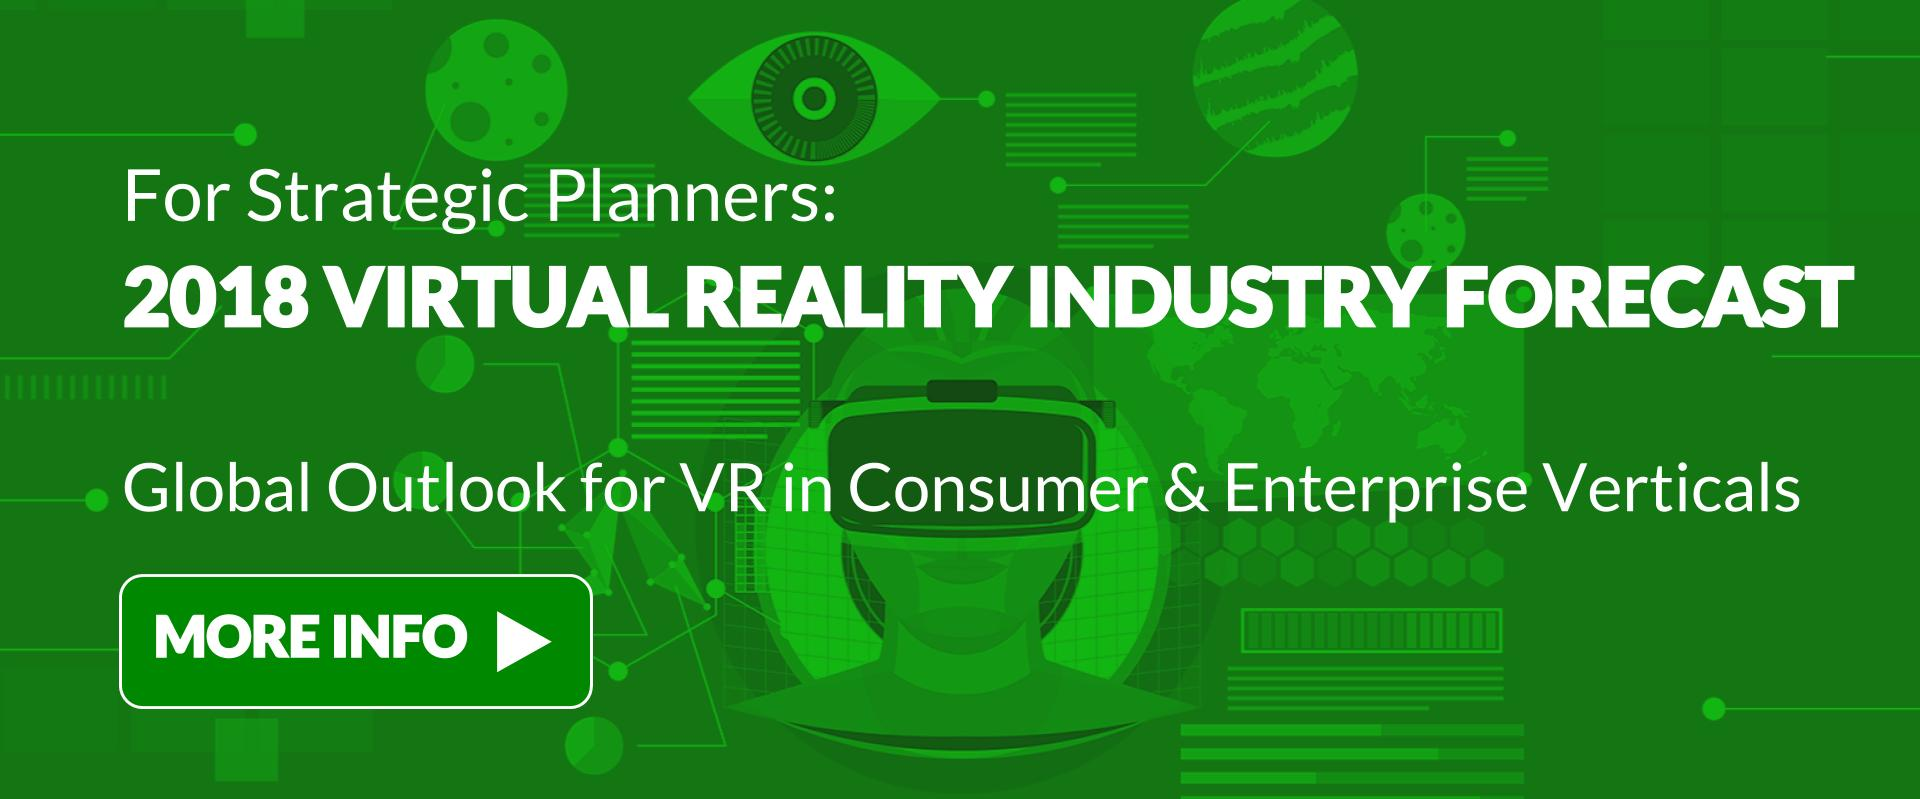 2018 Virtual Reality Industry Forecast